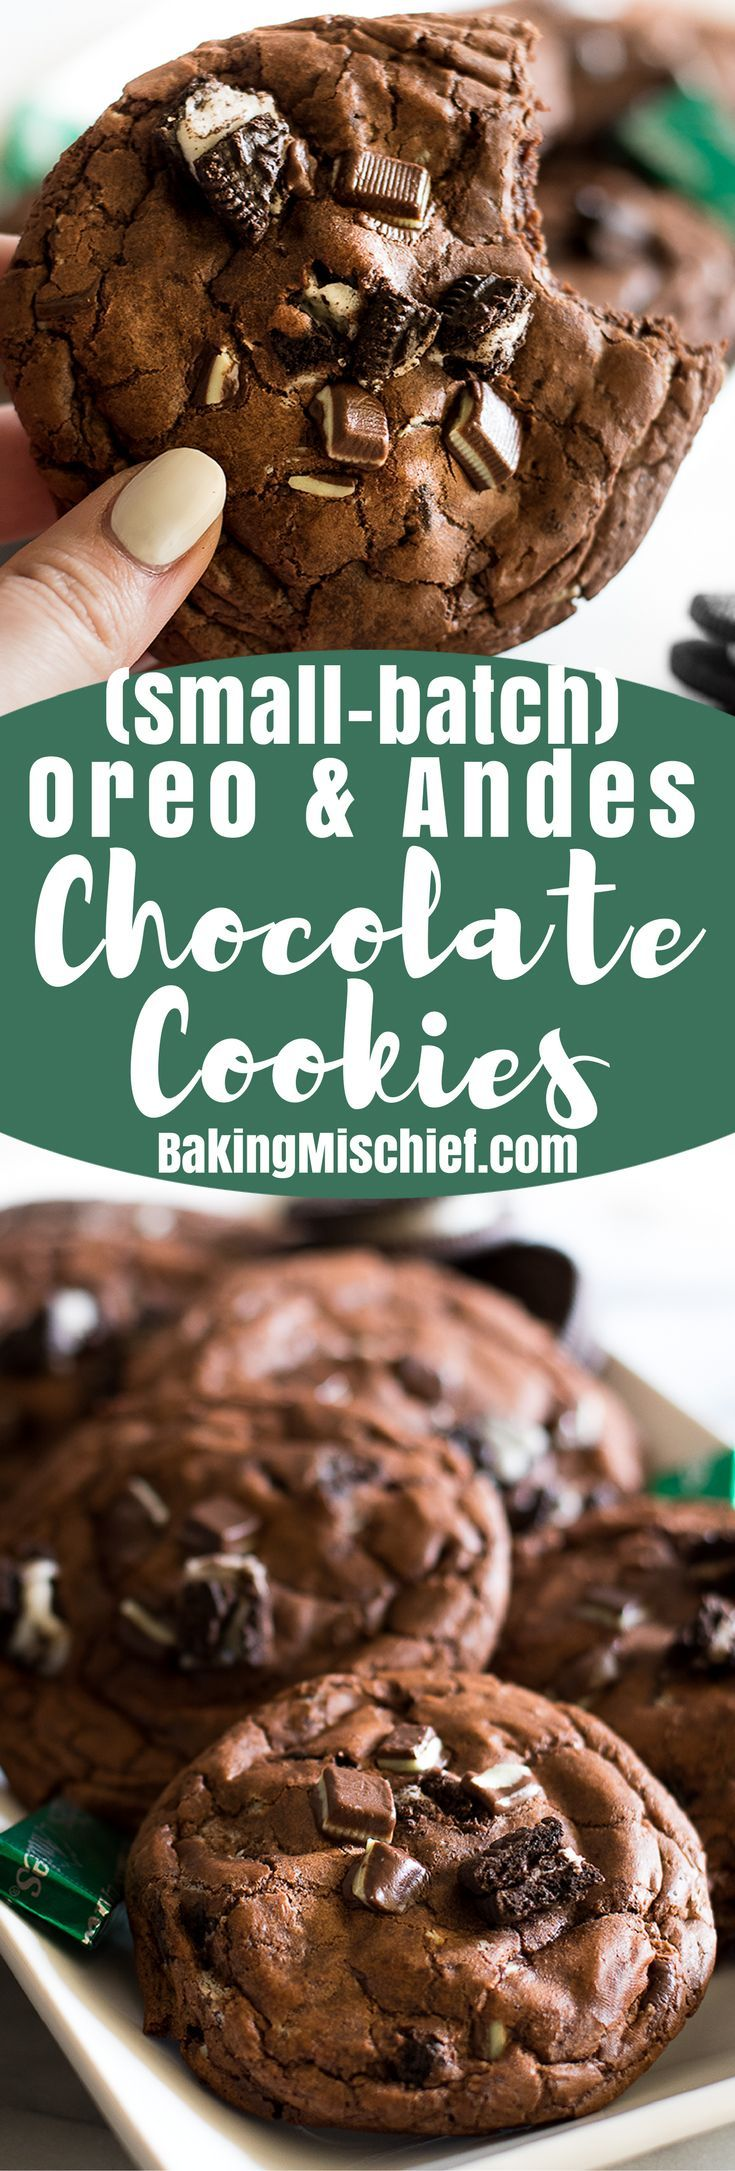 Small-batch chocolate cookies with Oreos and Andes Mints. A little crunchy, a little minty, and completely delicious. | Small batch dessert |